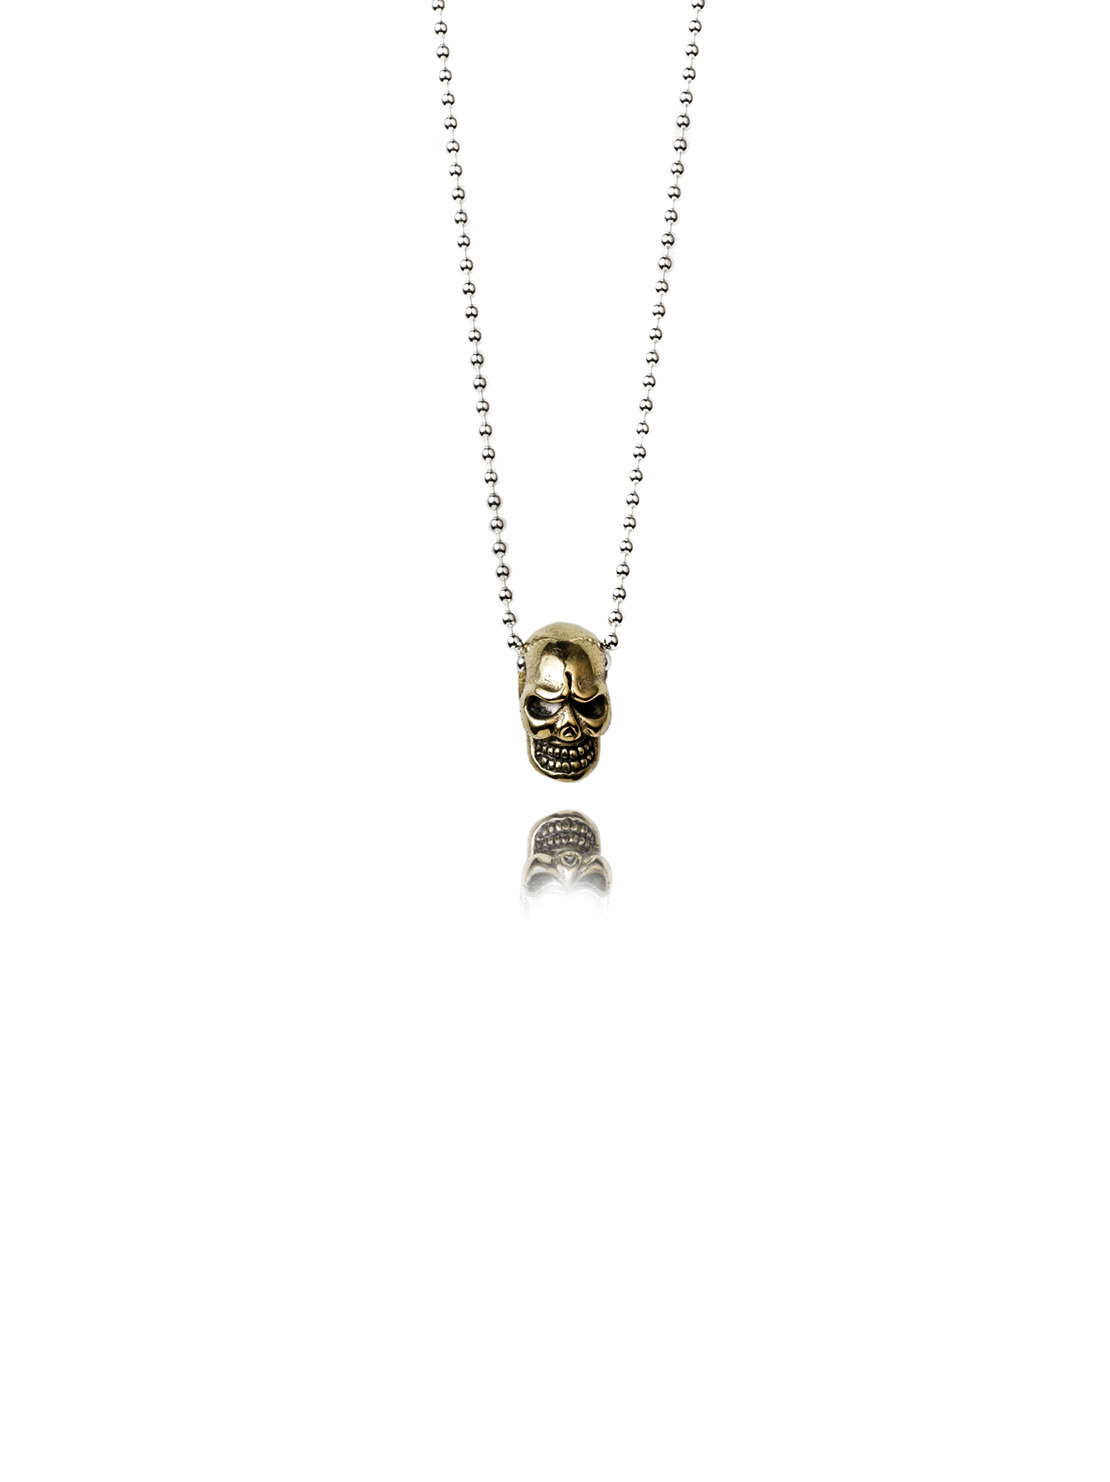 3D Brass Skull Necklace